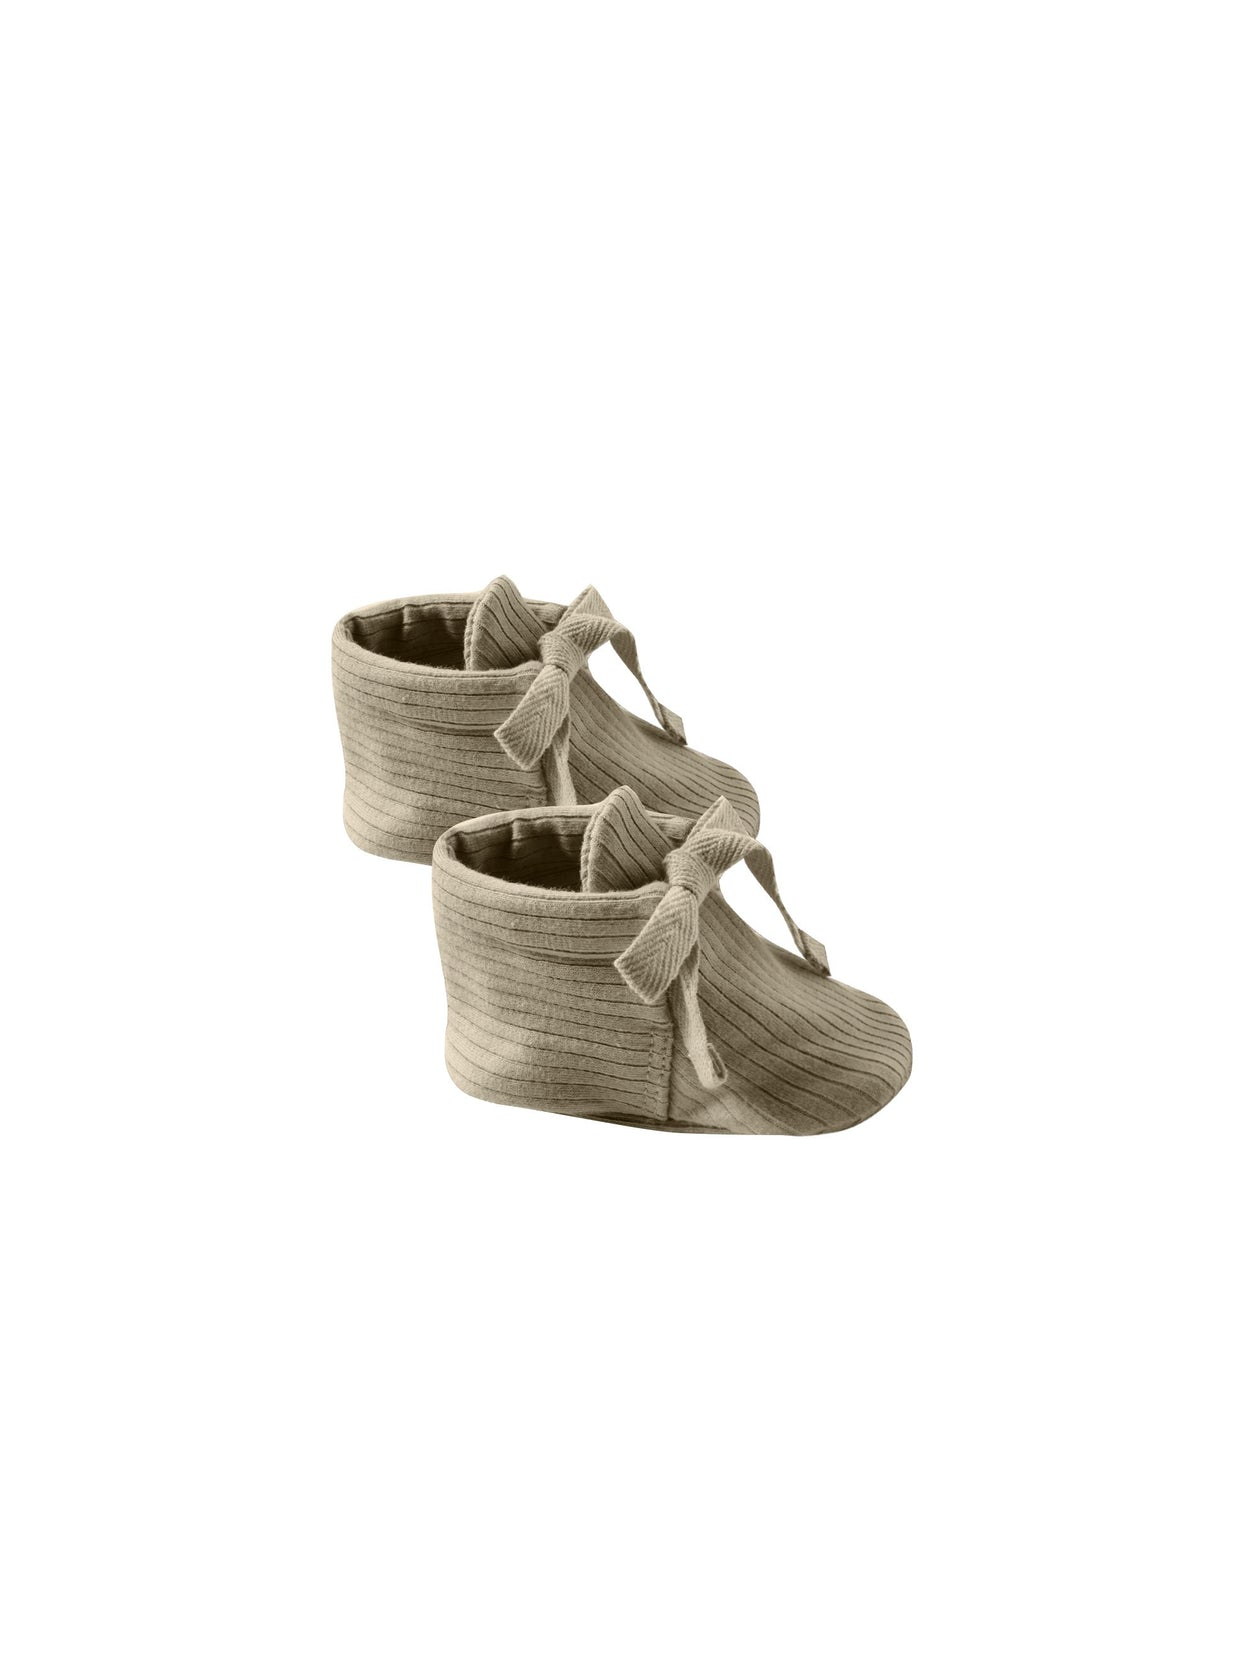 Quincy Mae Ribbed Baby Booties Olive